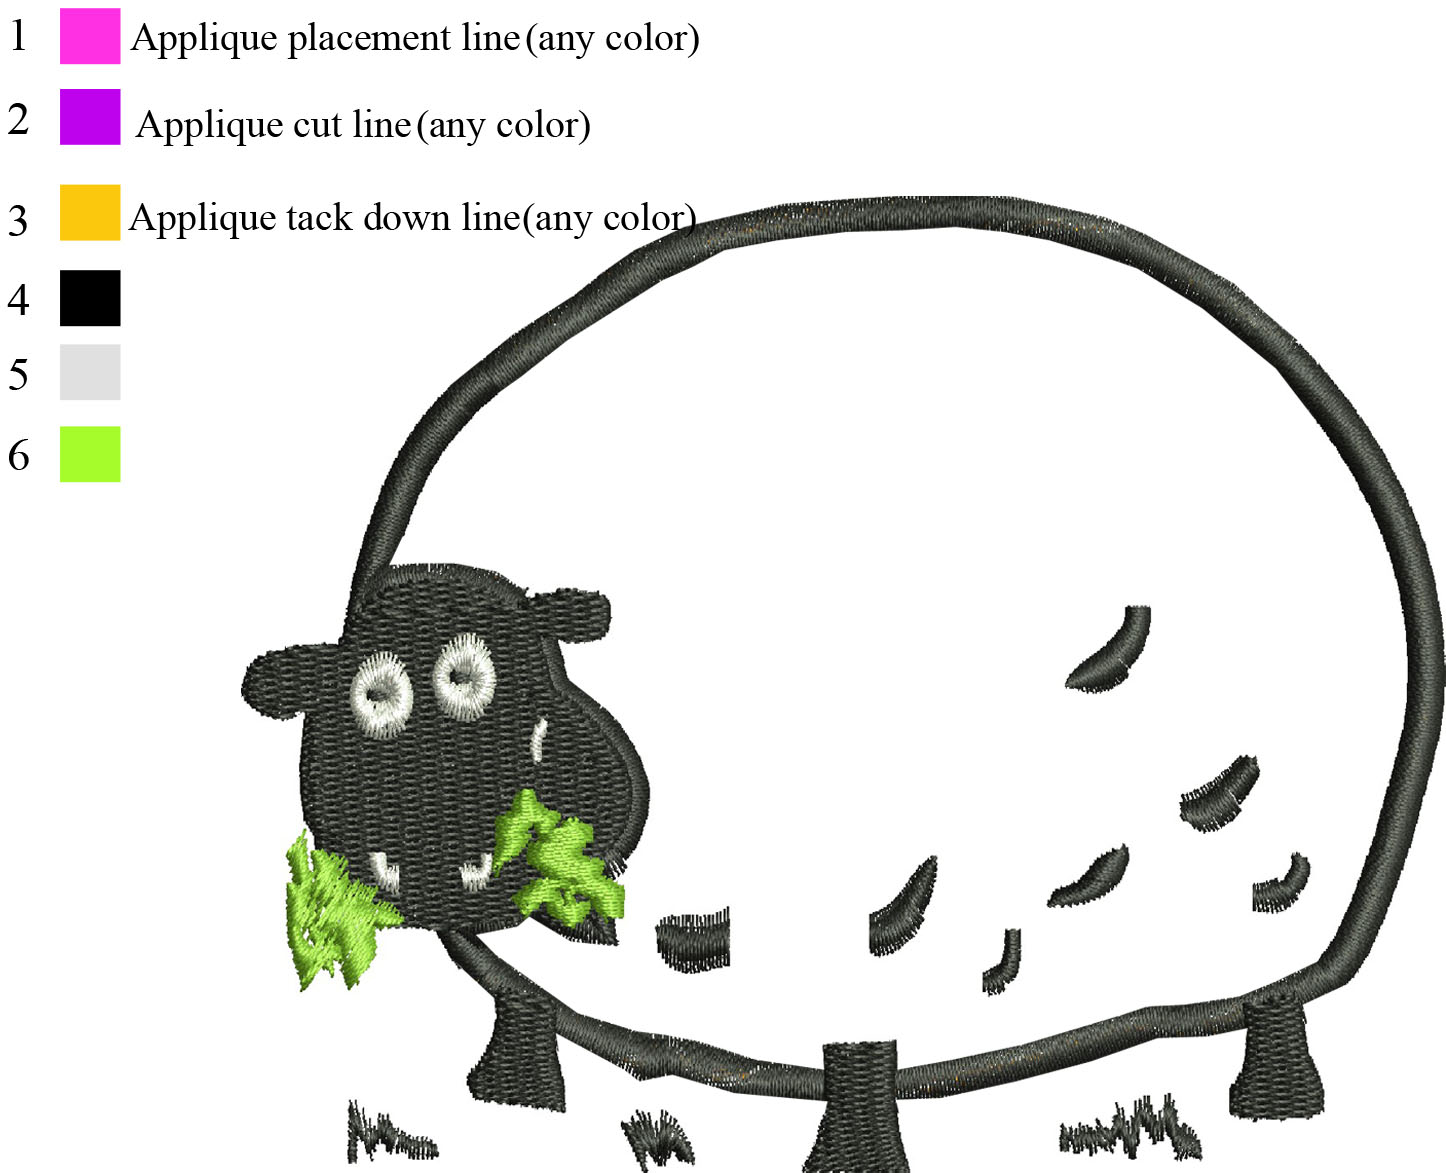 Embroidery designs: Shaun the sheep applique Embroidery